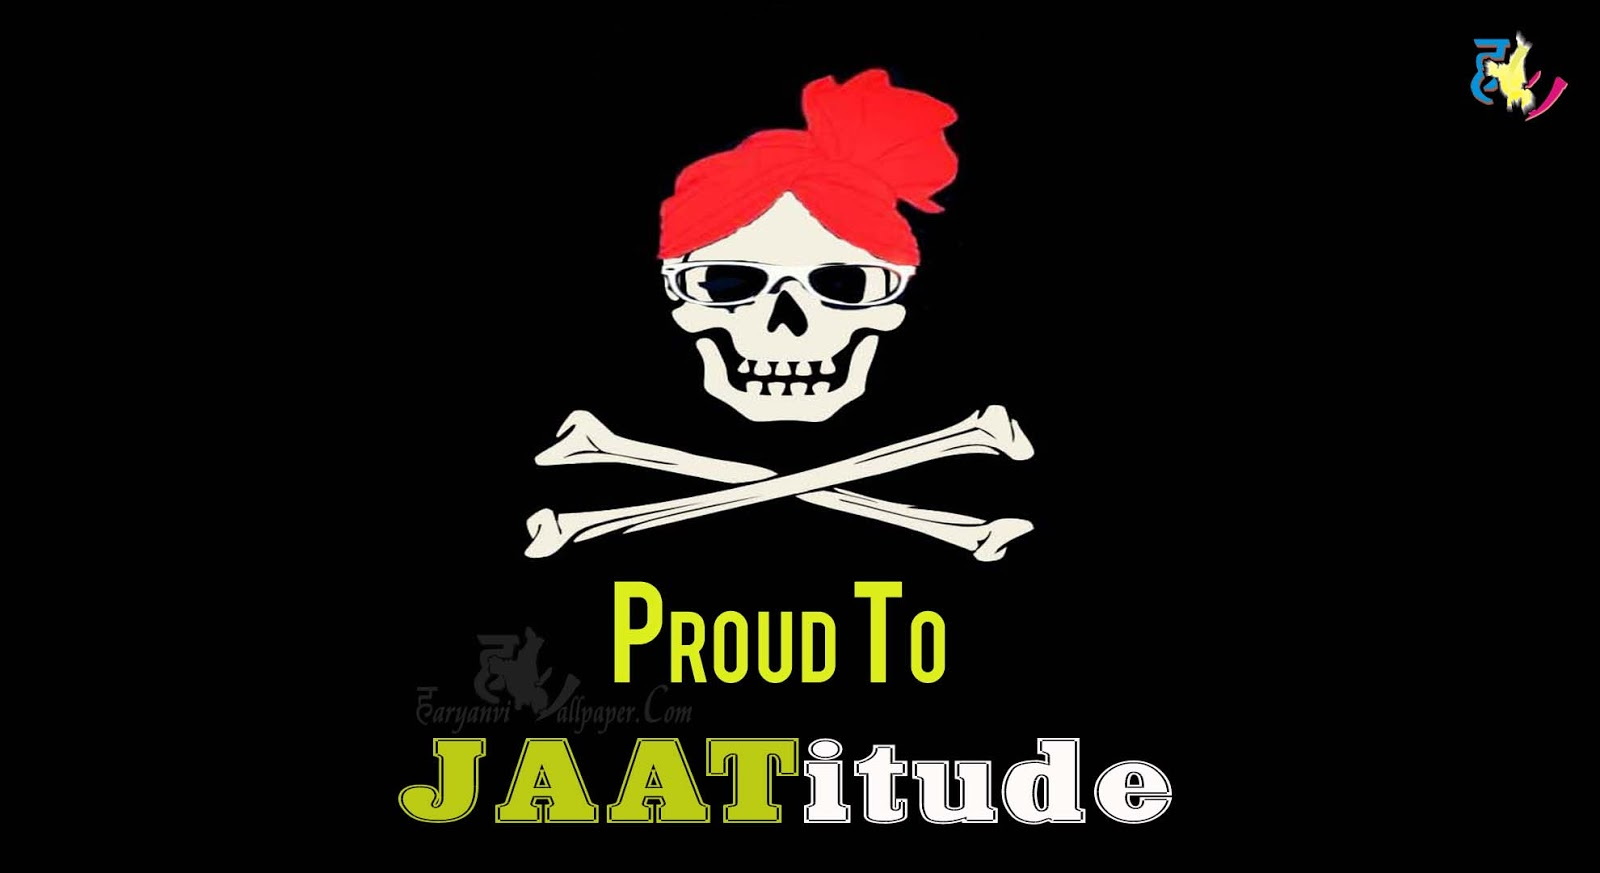 Jaat - Proud To Jaatitude - Haryanvi Wallpaper.Com